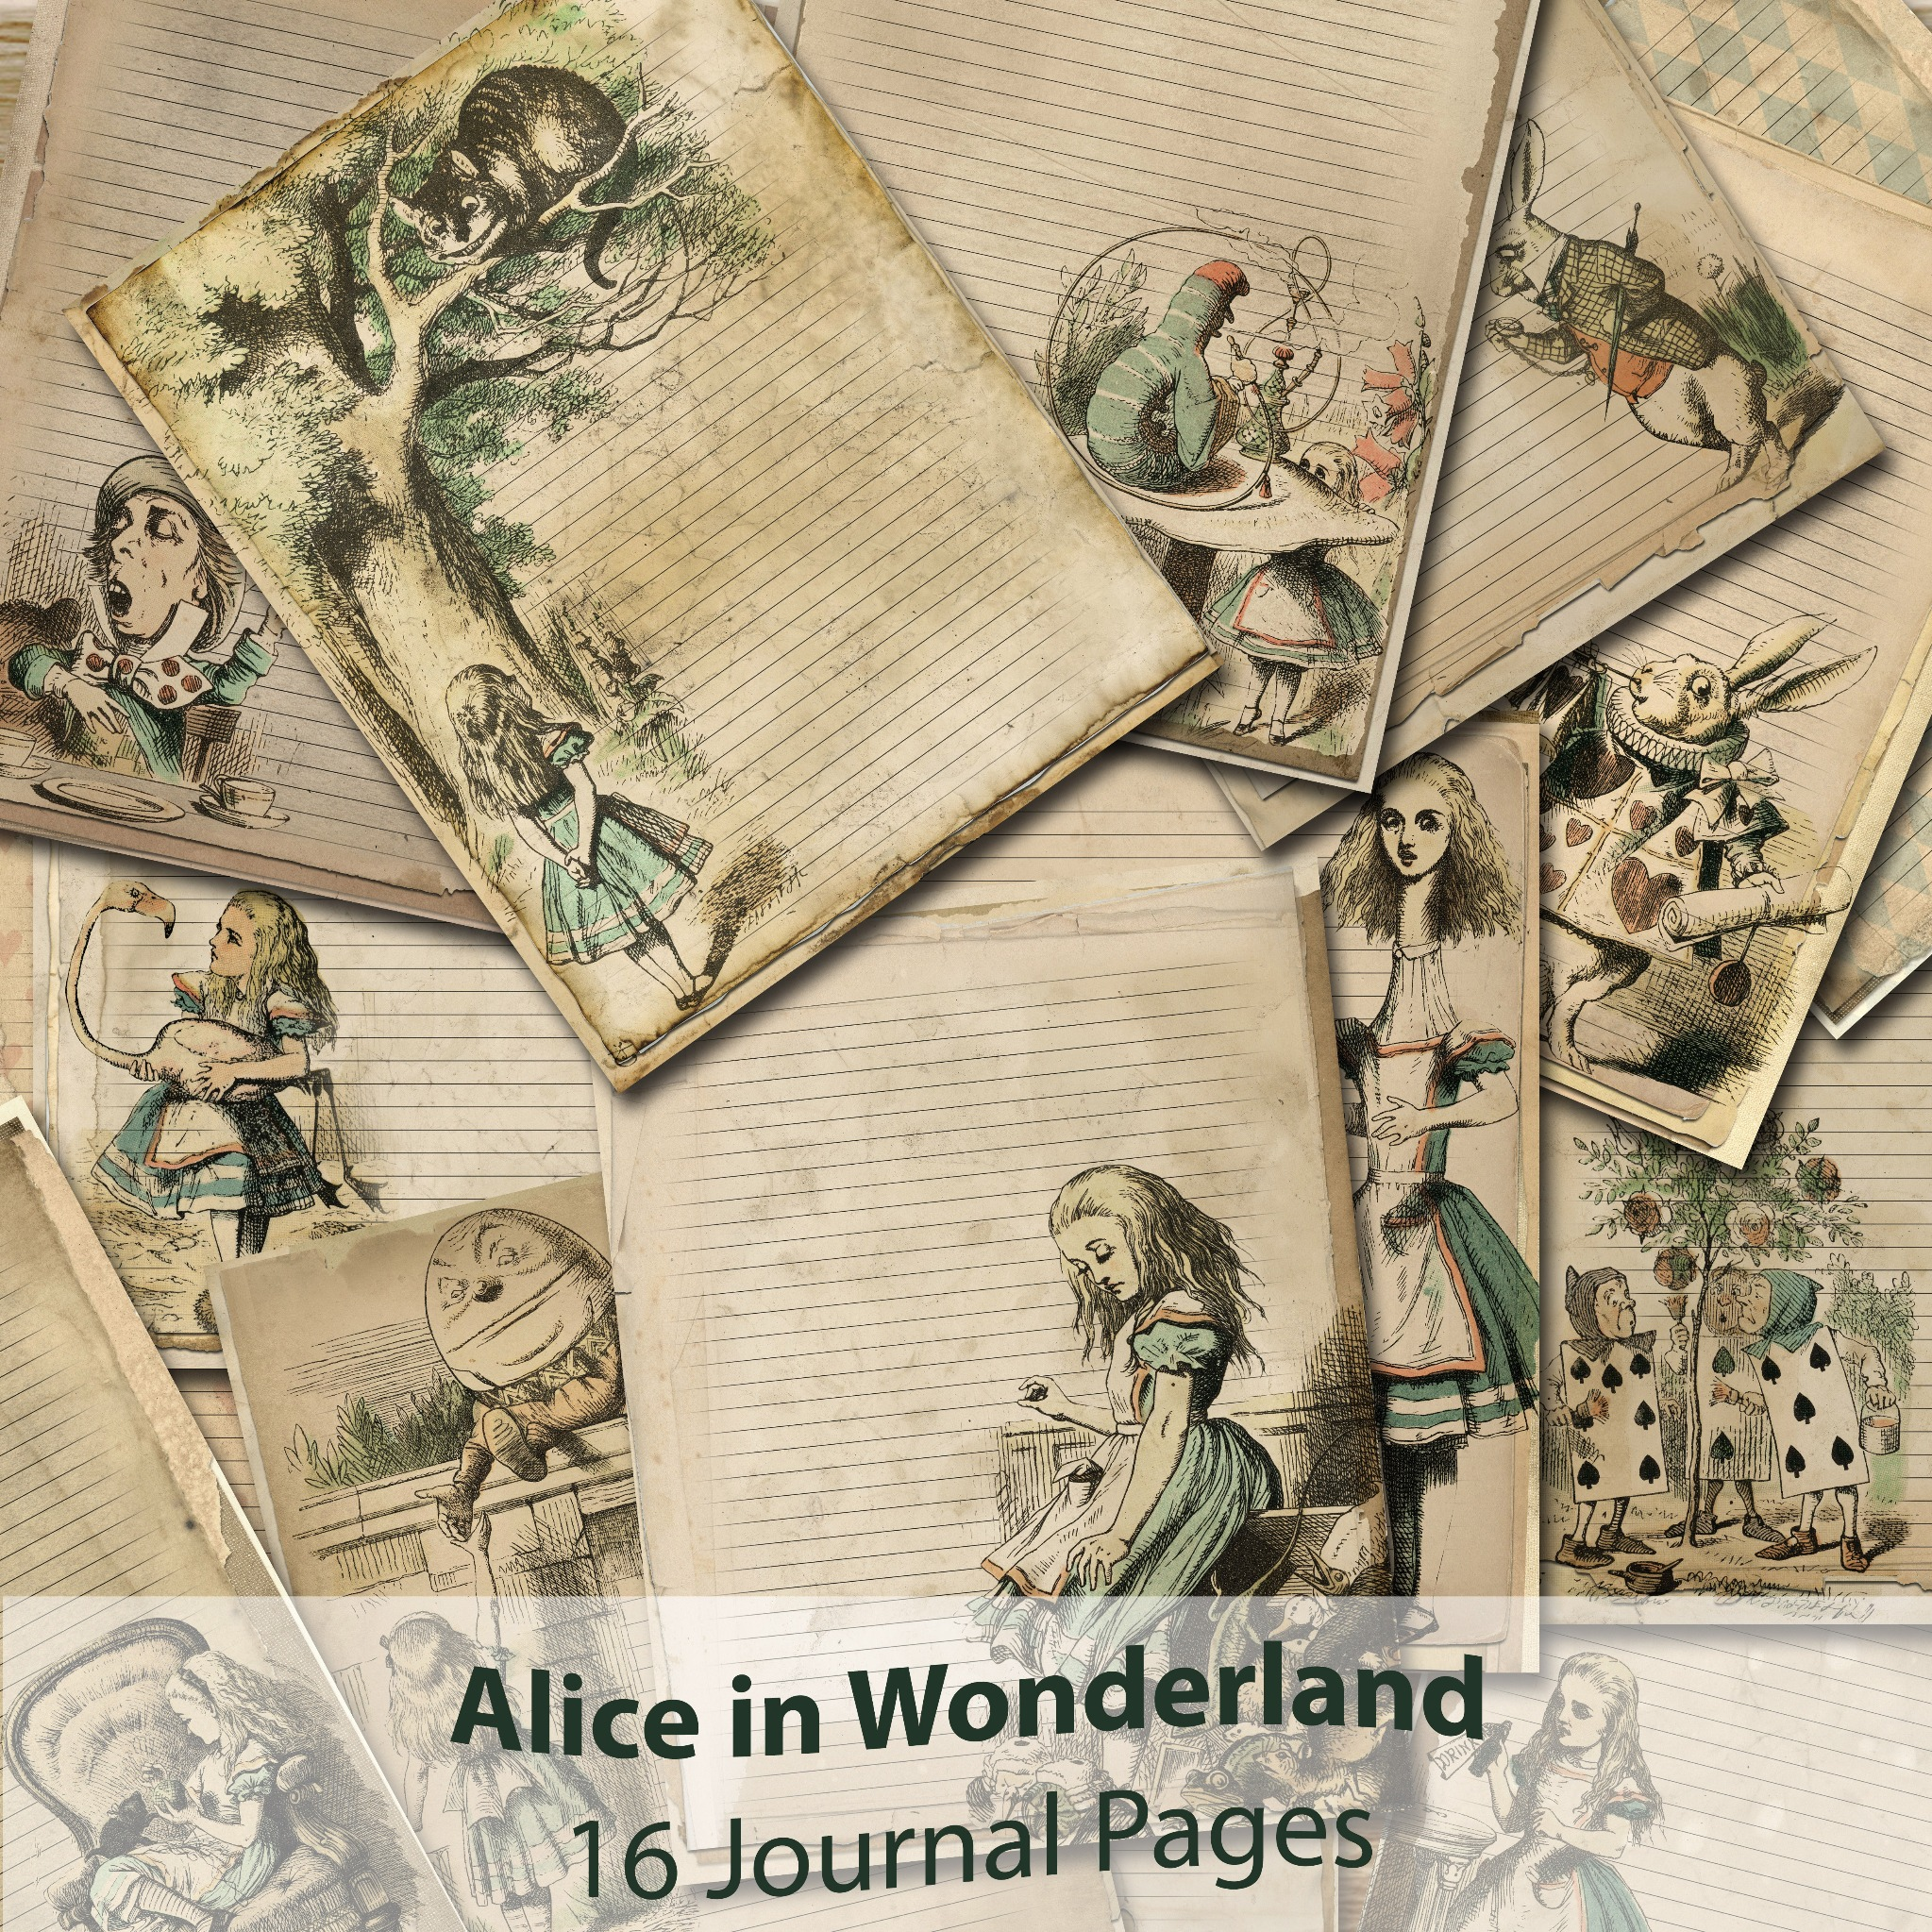 ALICE in WONDERLAND Journal 16 Pages